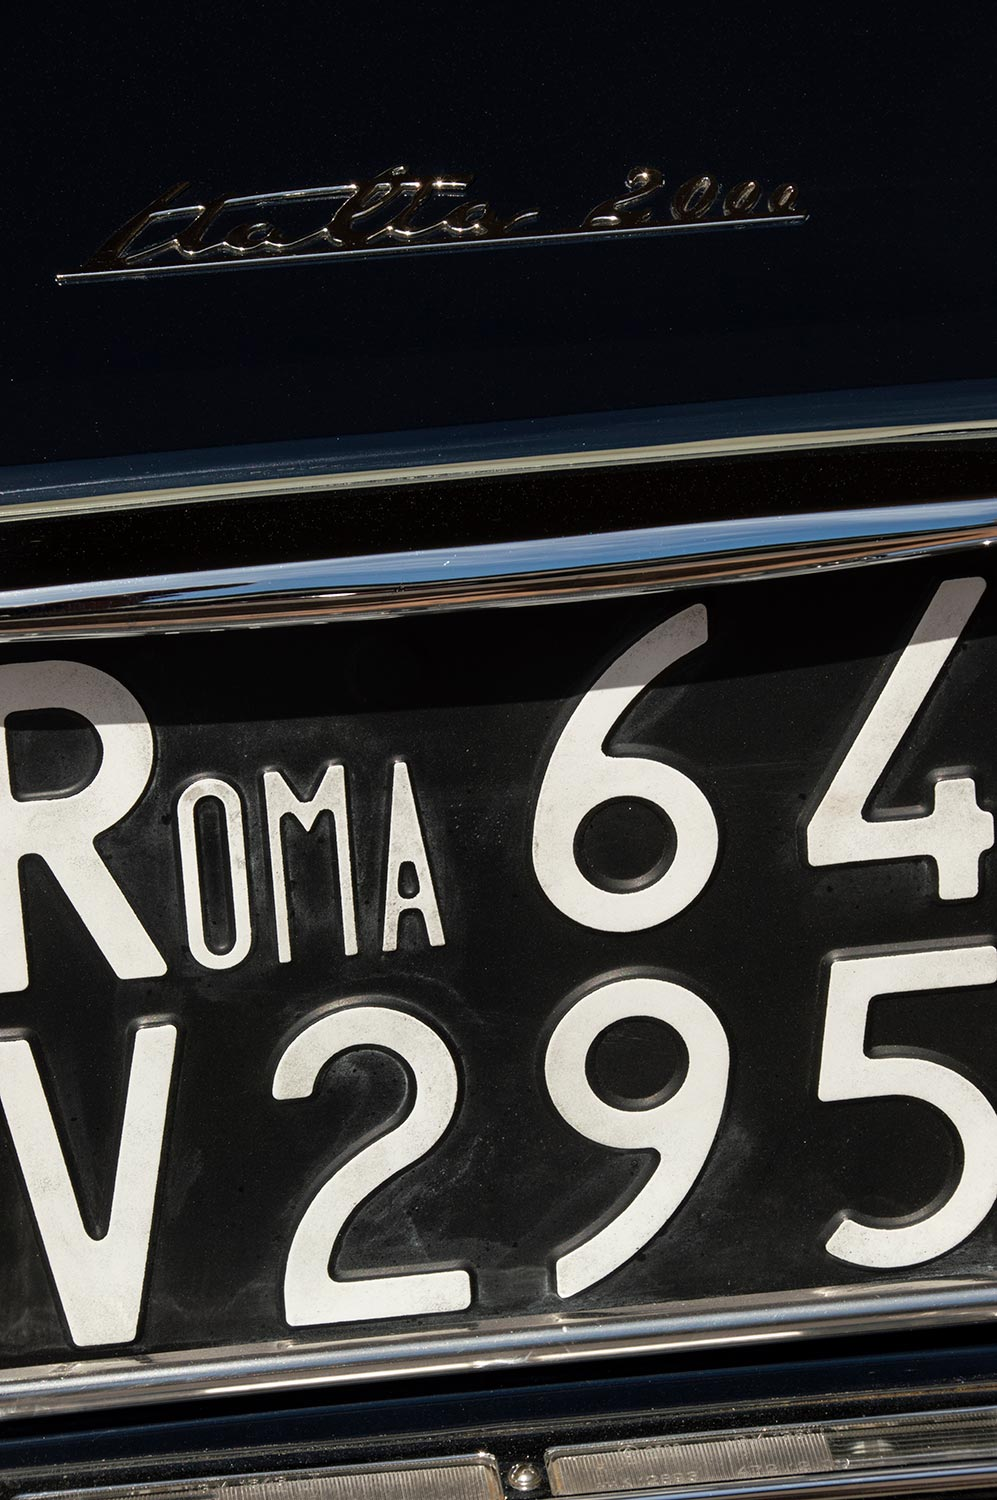 You are currently viewing Roma 64